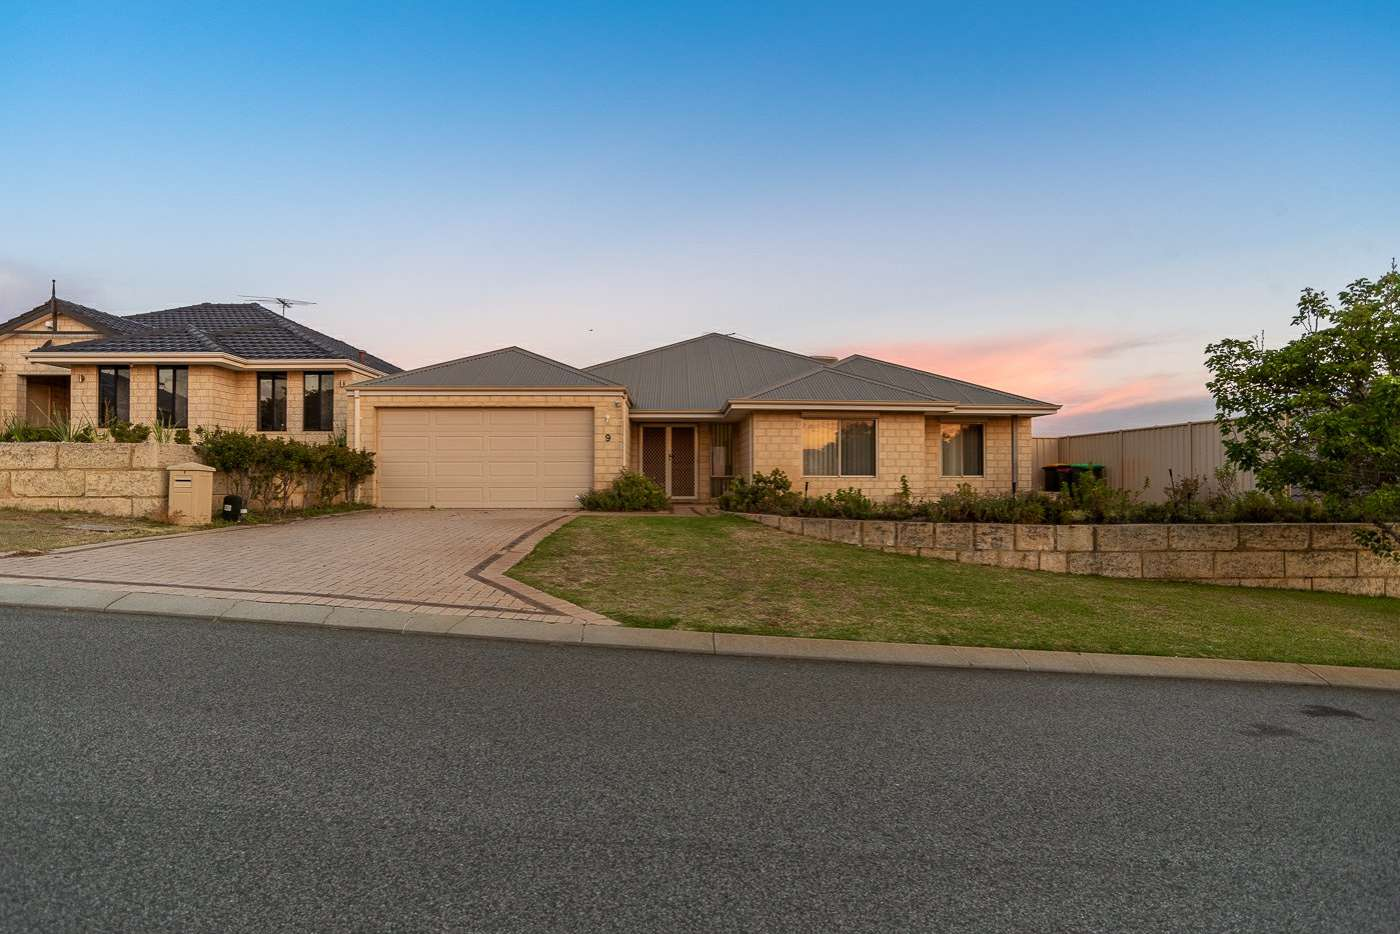 Main view of Homely house listing, 9 Dragonfly Way, Beeliar WA 6164